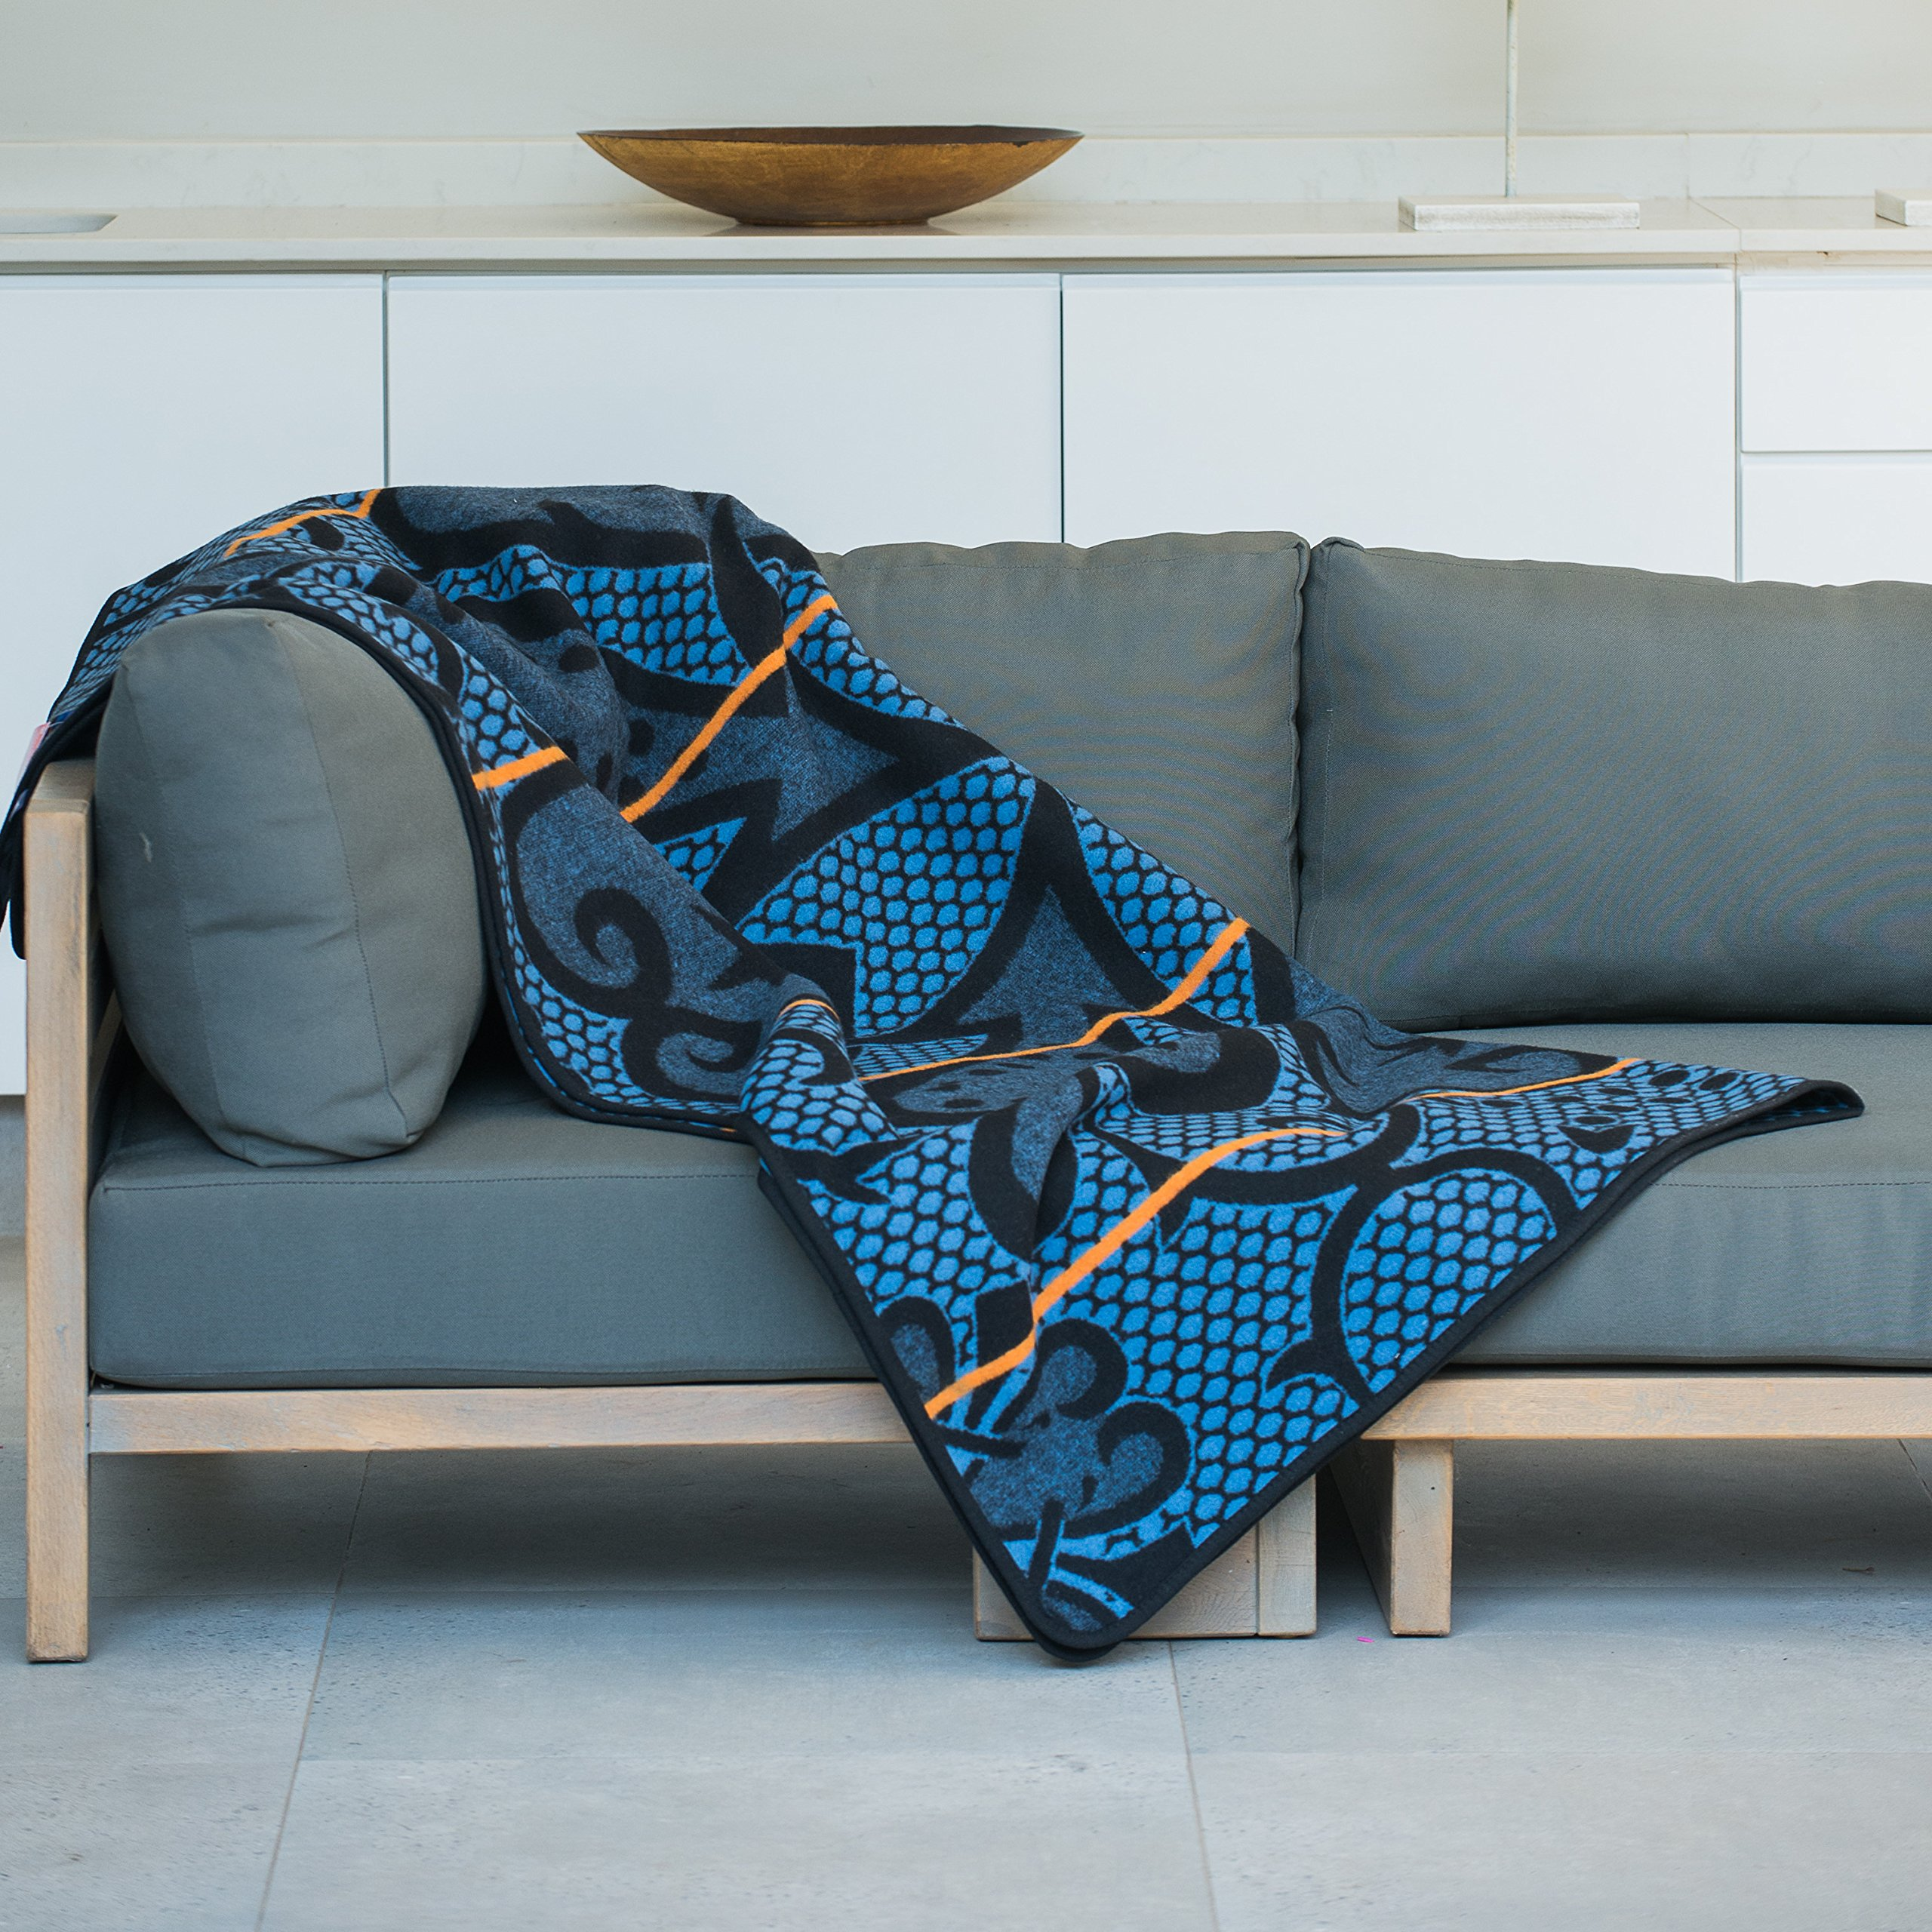 BASOTHO HERITAGE BLANKET - (As seen in Black Panther) Seanamarena Chromatic. (61x 65) Original Quality, Woolen wearing blankets from Lesotho, Southern Africa